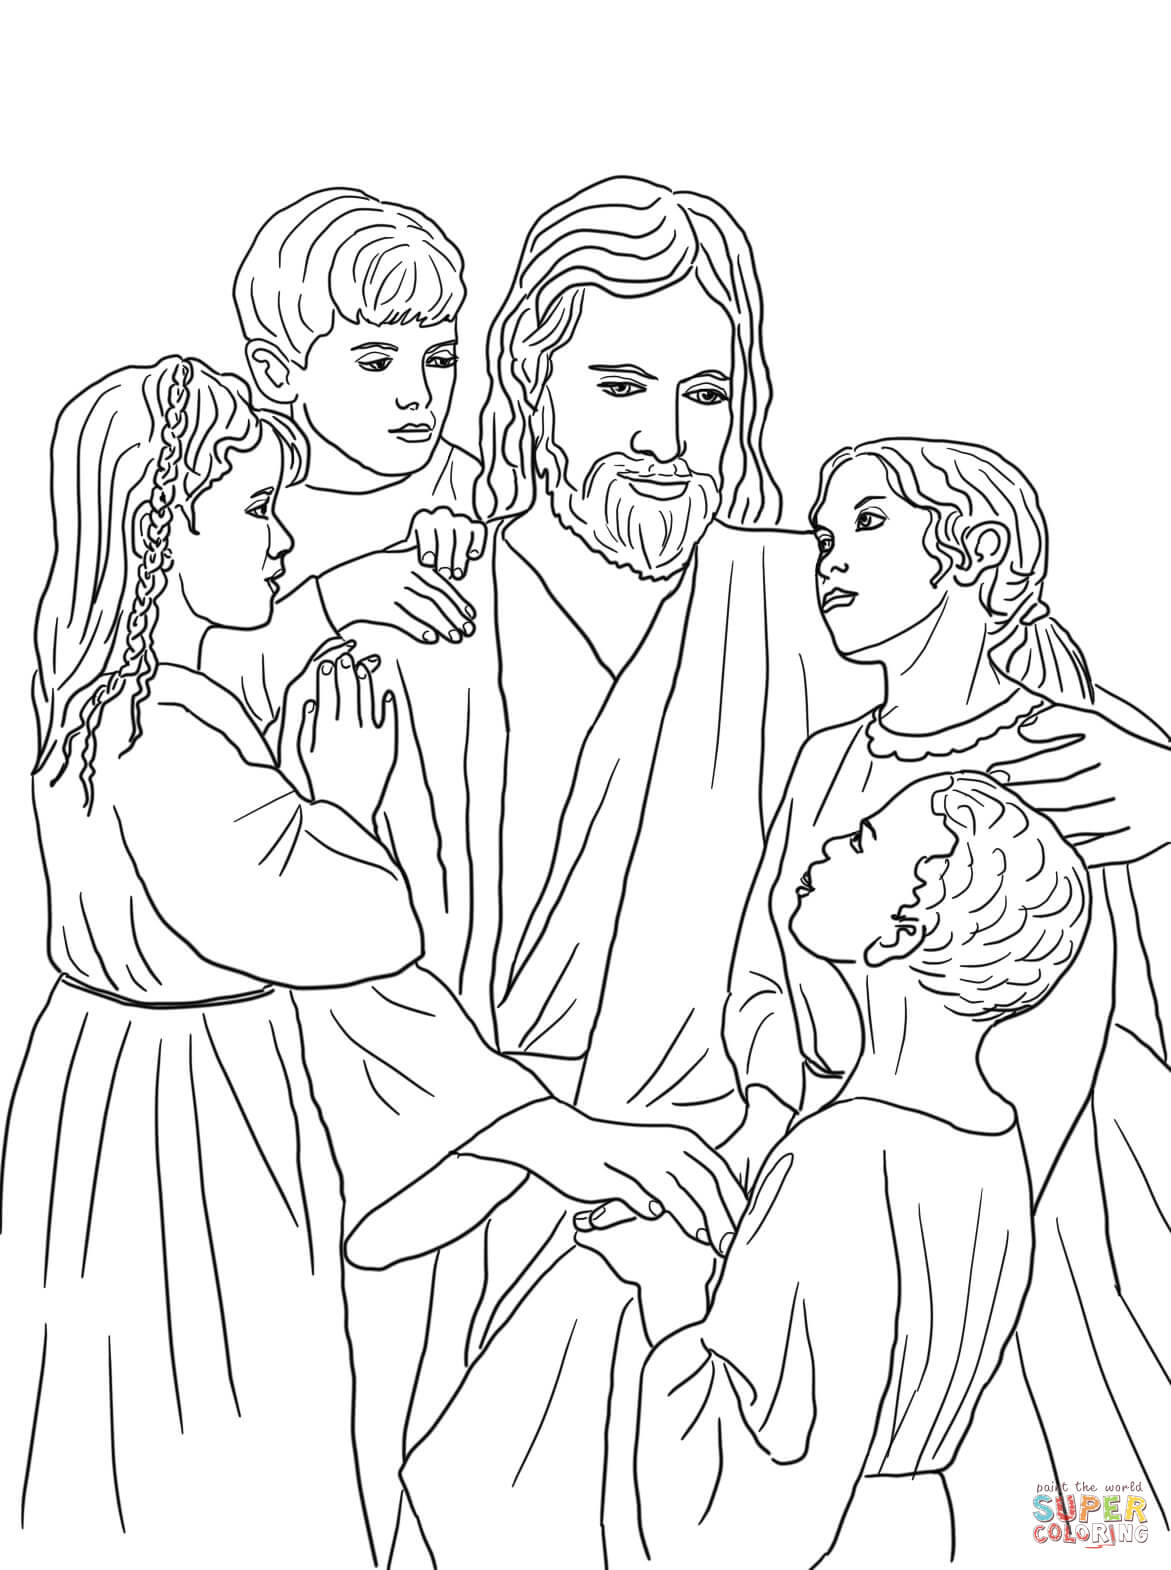 Jesus Loves The Little Children Coloring Pages - Coloring Home